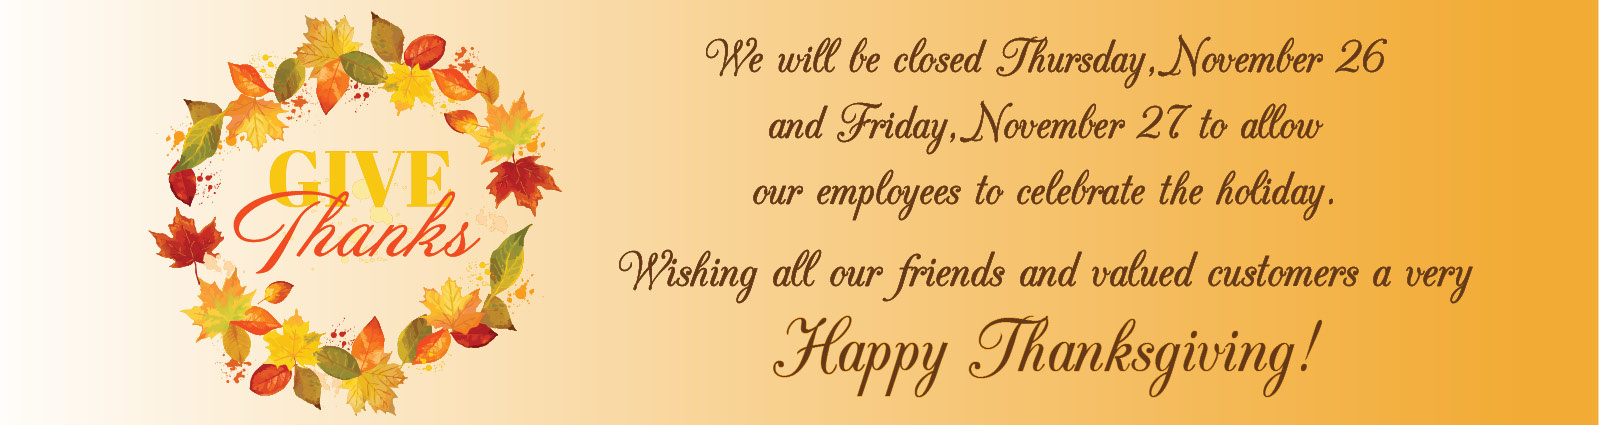 We will be closed November 26 & 27 for our Thanksgiving Holiday.